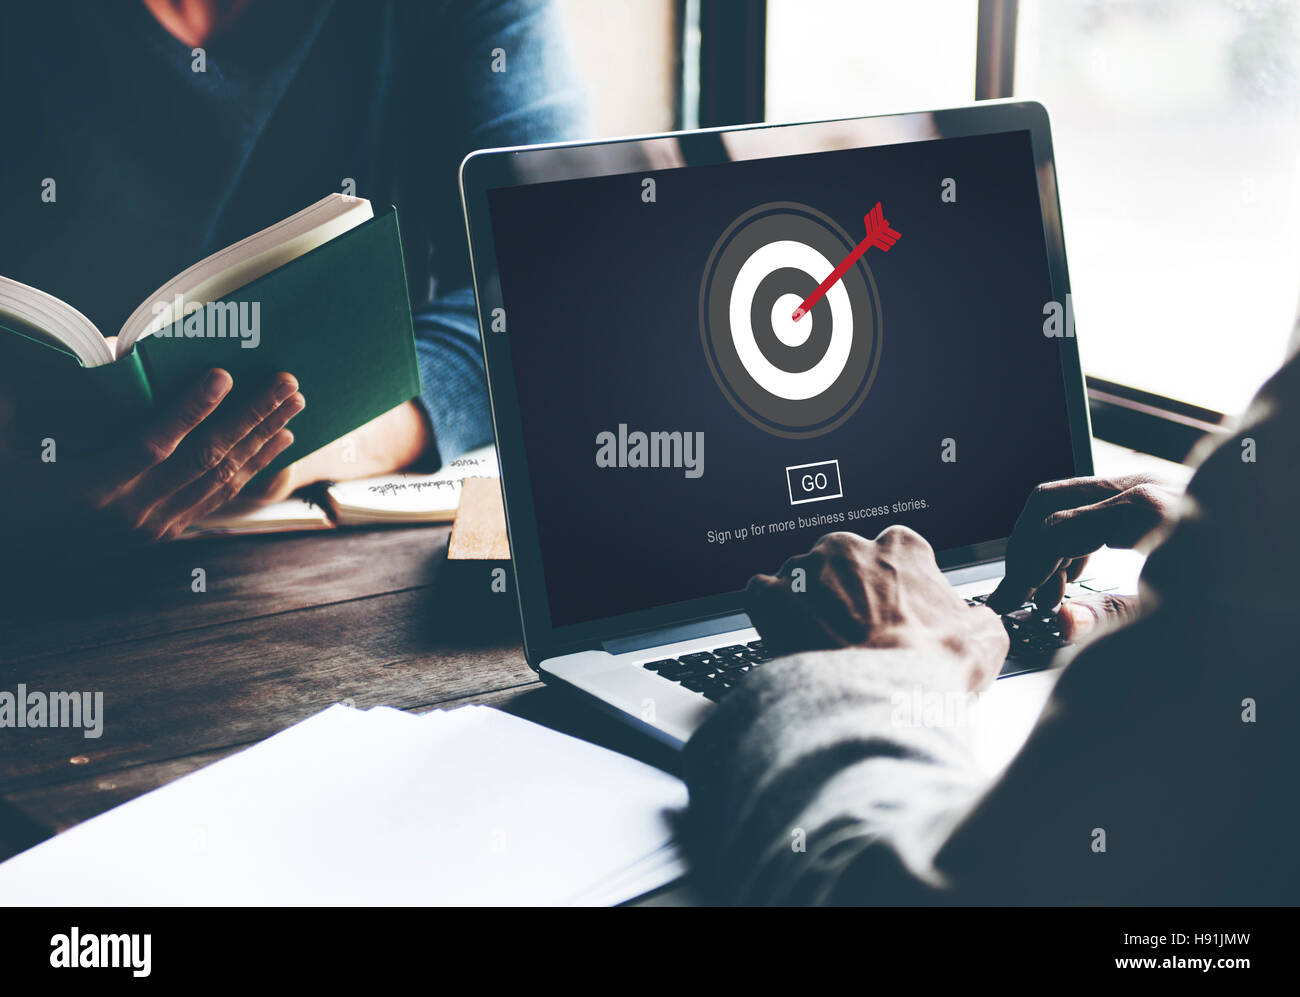 Targeting Aiming Shhot Directional Accurate Concept - Stock Image